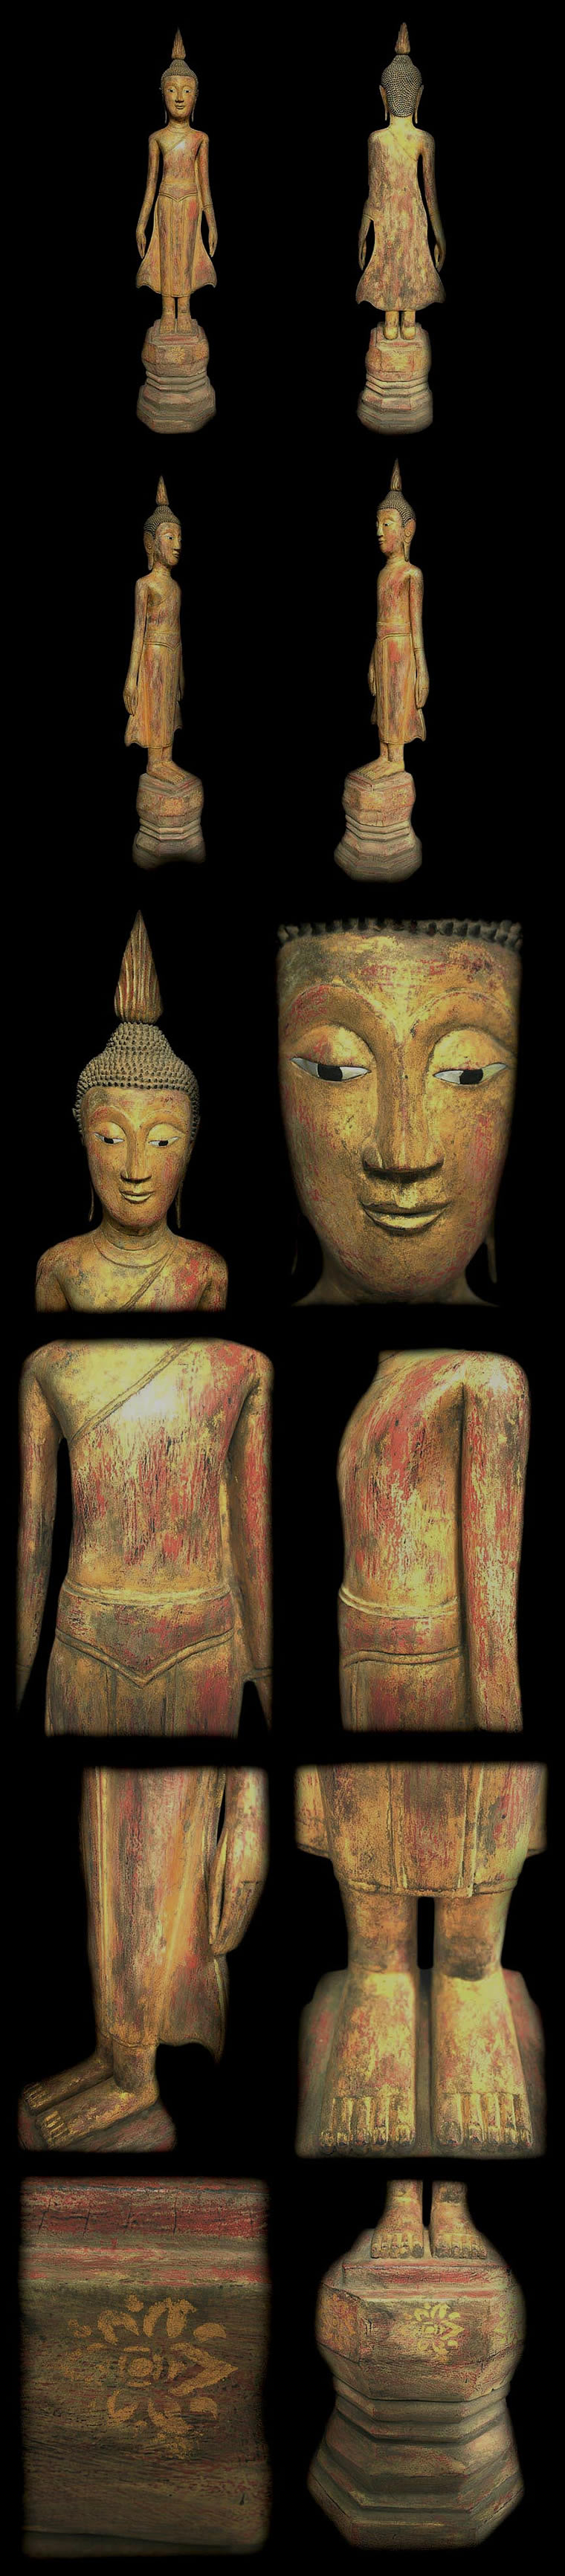 Extremely Rare Late 18C Standing Wood Laos Buddha #AL.1020